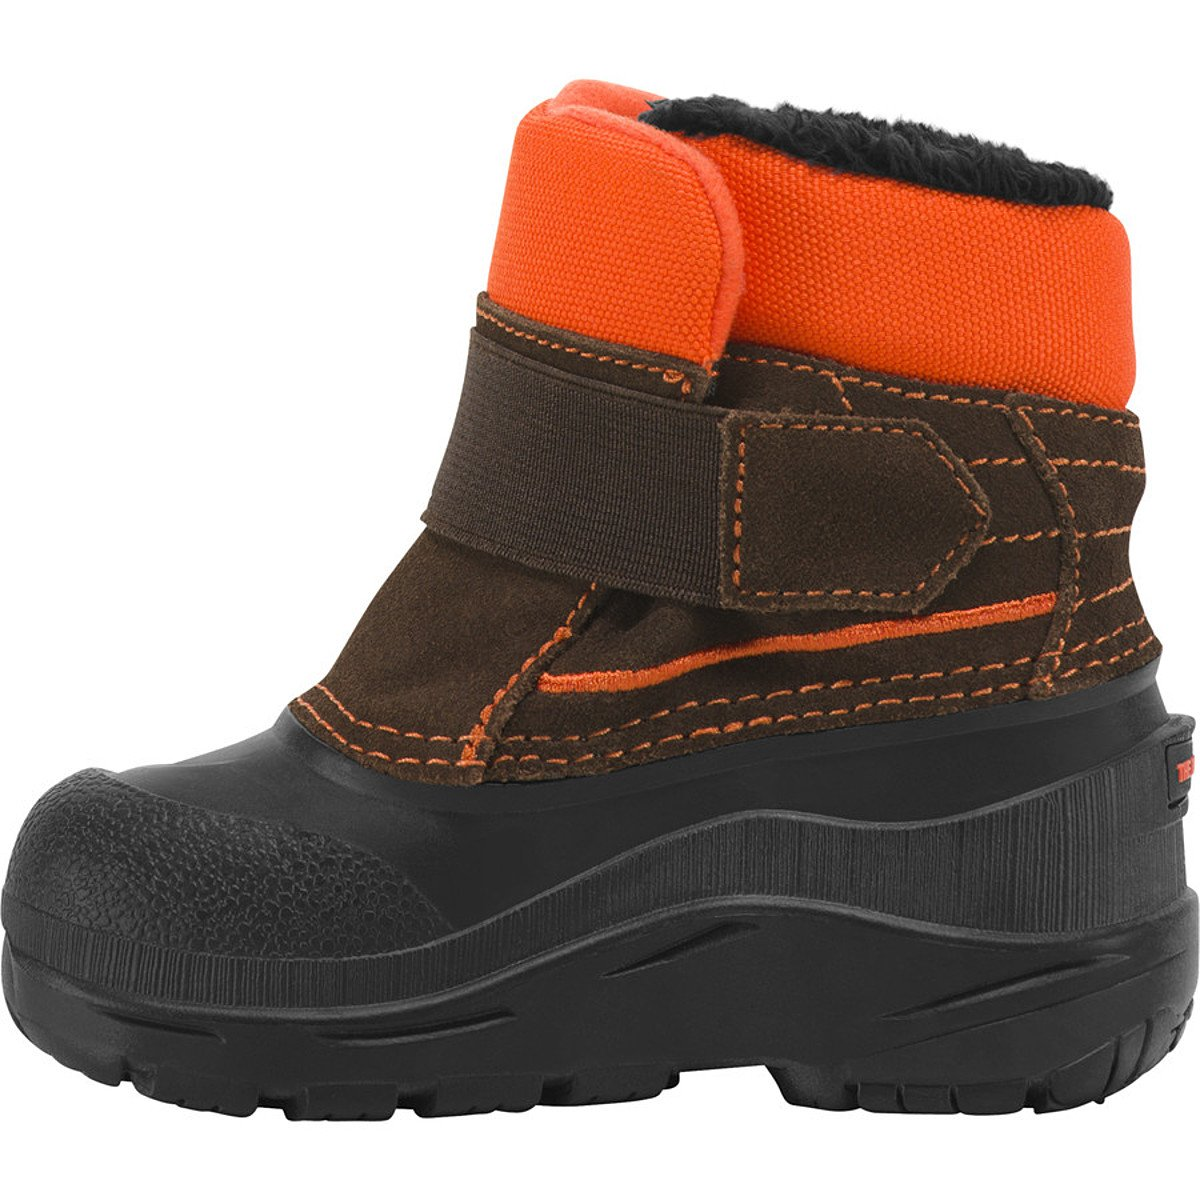 The North Face Kids Snow Powder Hound Boots Brown Orange (Toddler) Imported